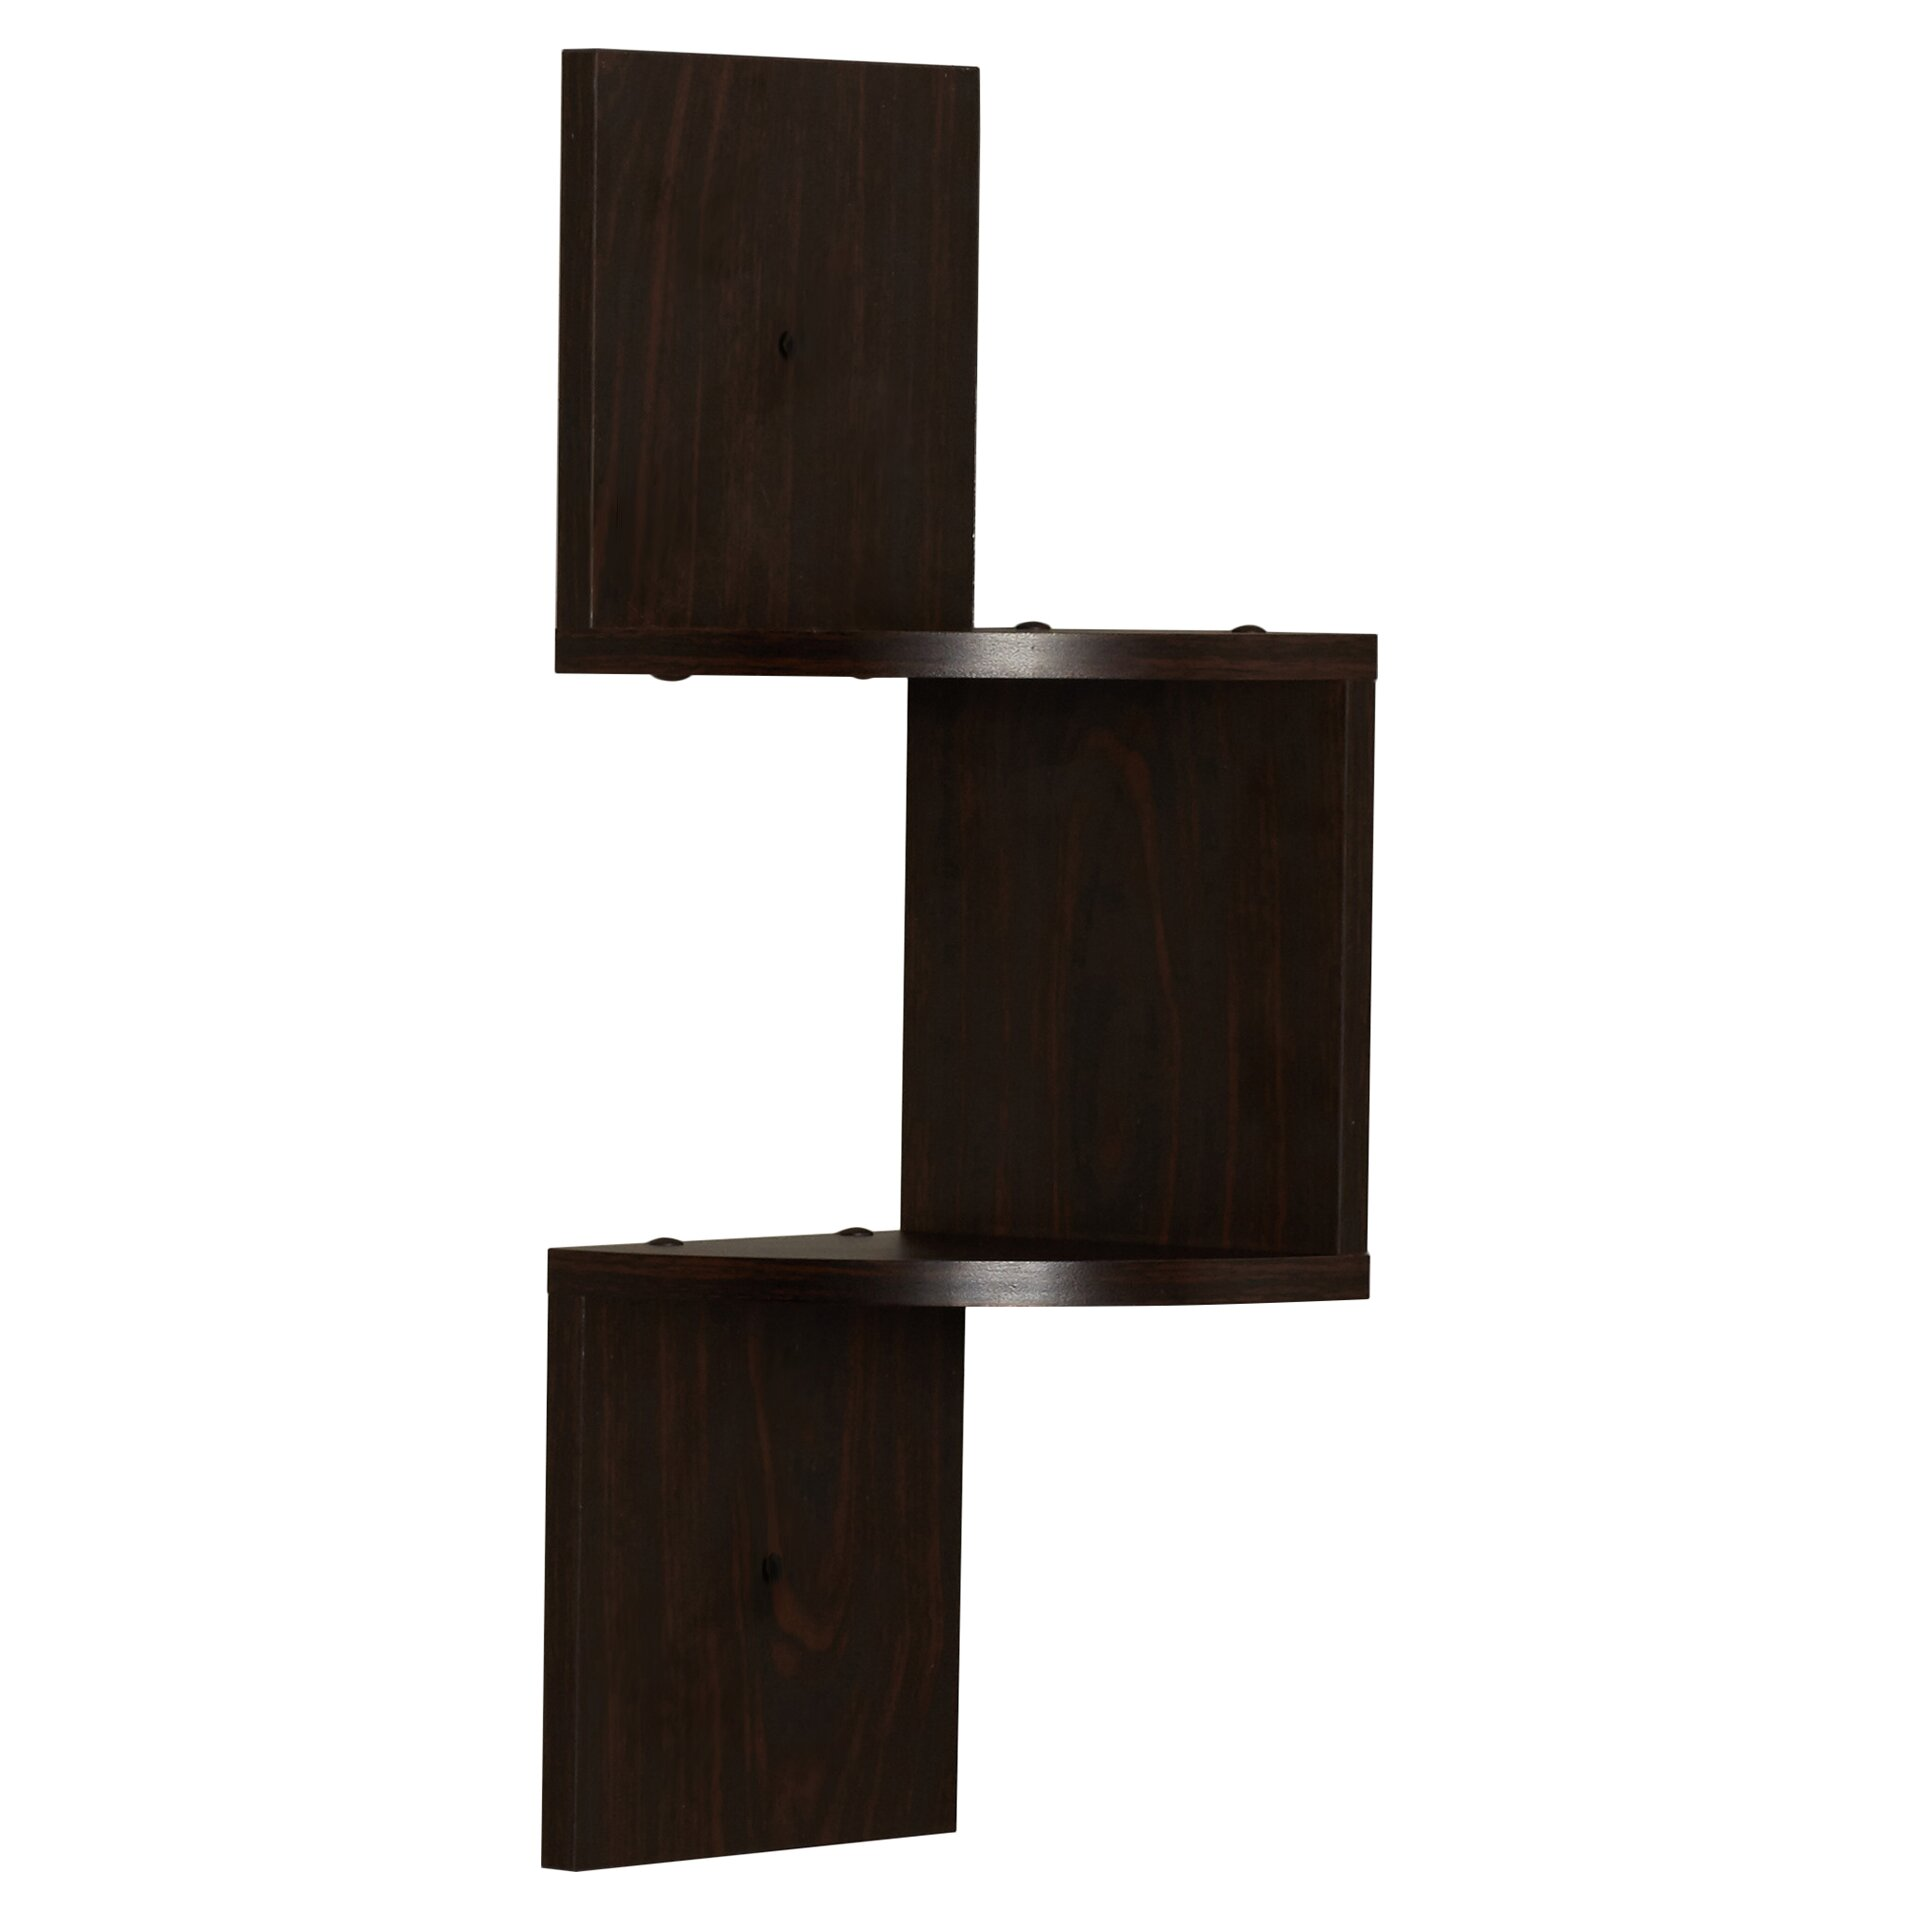 Varick Gallery Ashland Corner Wall Shelf & Reviews  Wayfair